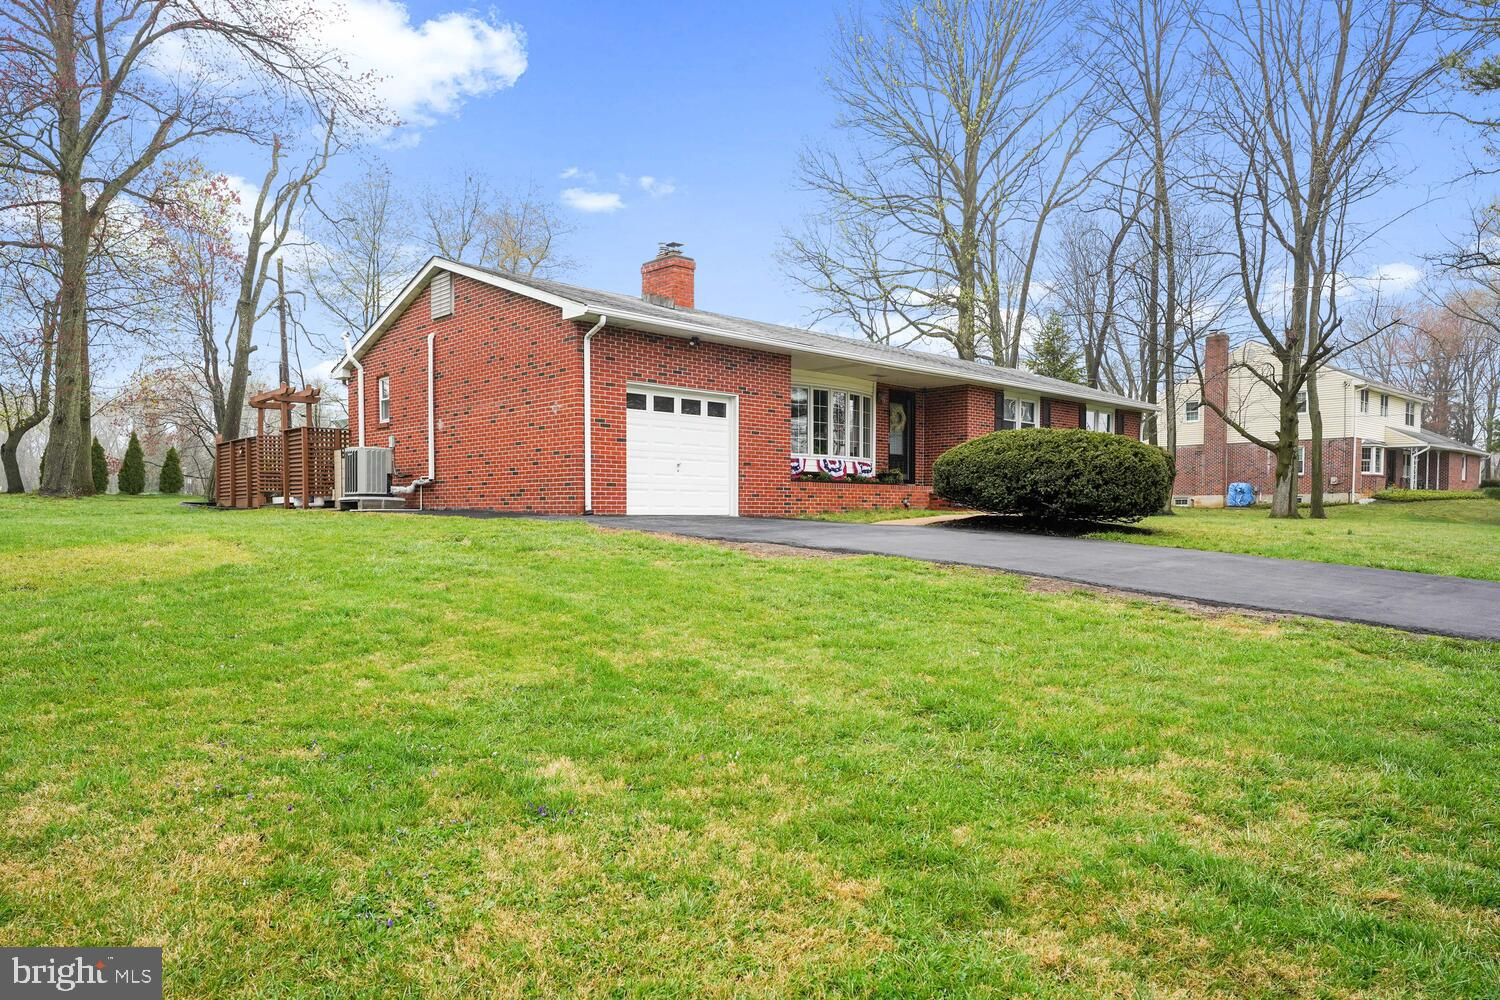 Beautiful renovated 4 bedroom 2 full bath  brick ranch  on spacious .69 acre lot in popular North Wi